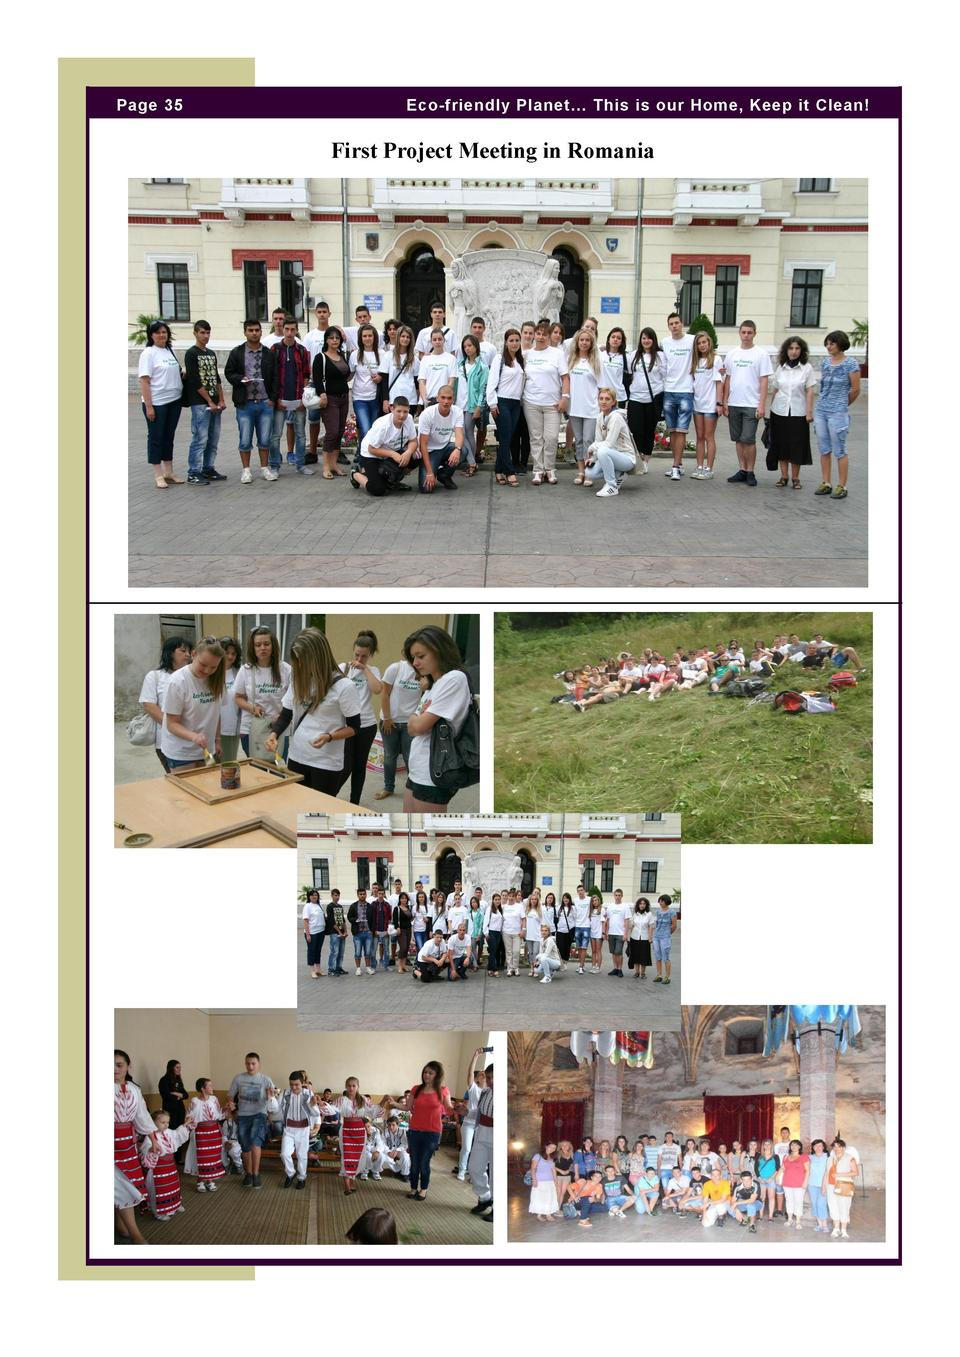 Page 35  Eco-friendly Planet    This is our Home, Keep it Clean   First Project Meeting in Romania